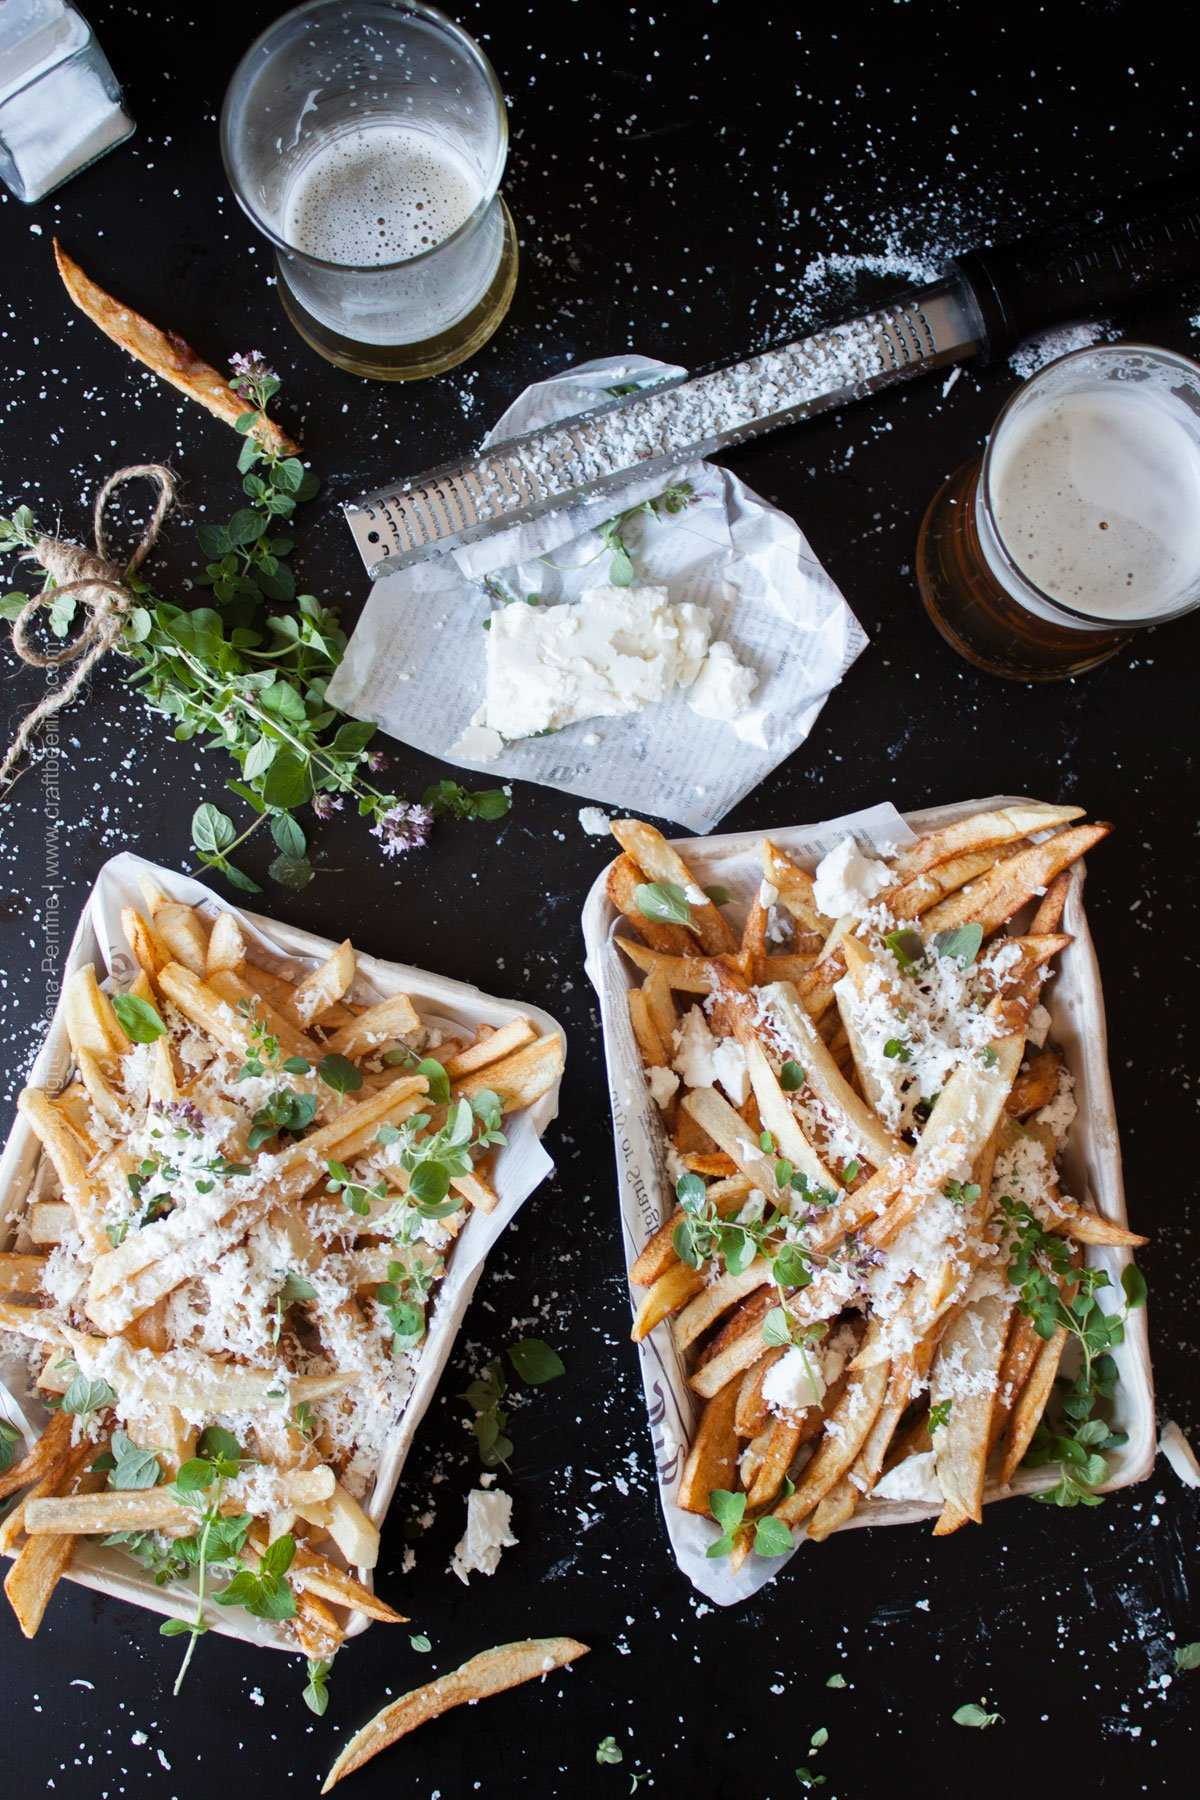 Hand cut fries with feta cheese and oregano. #handcutfries